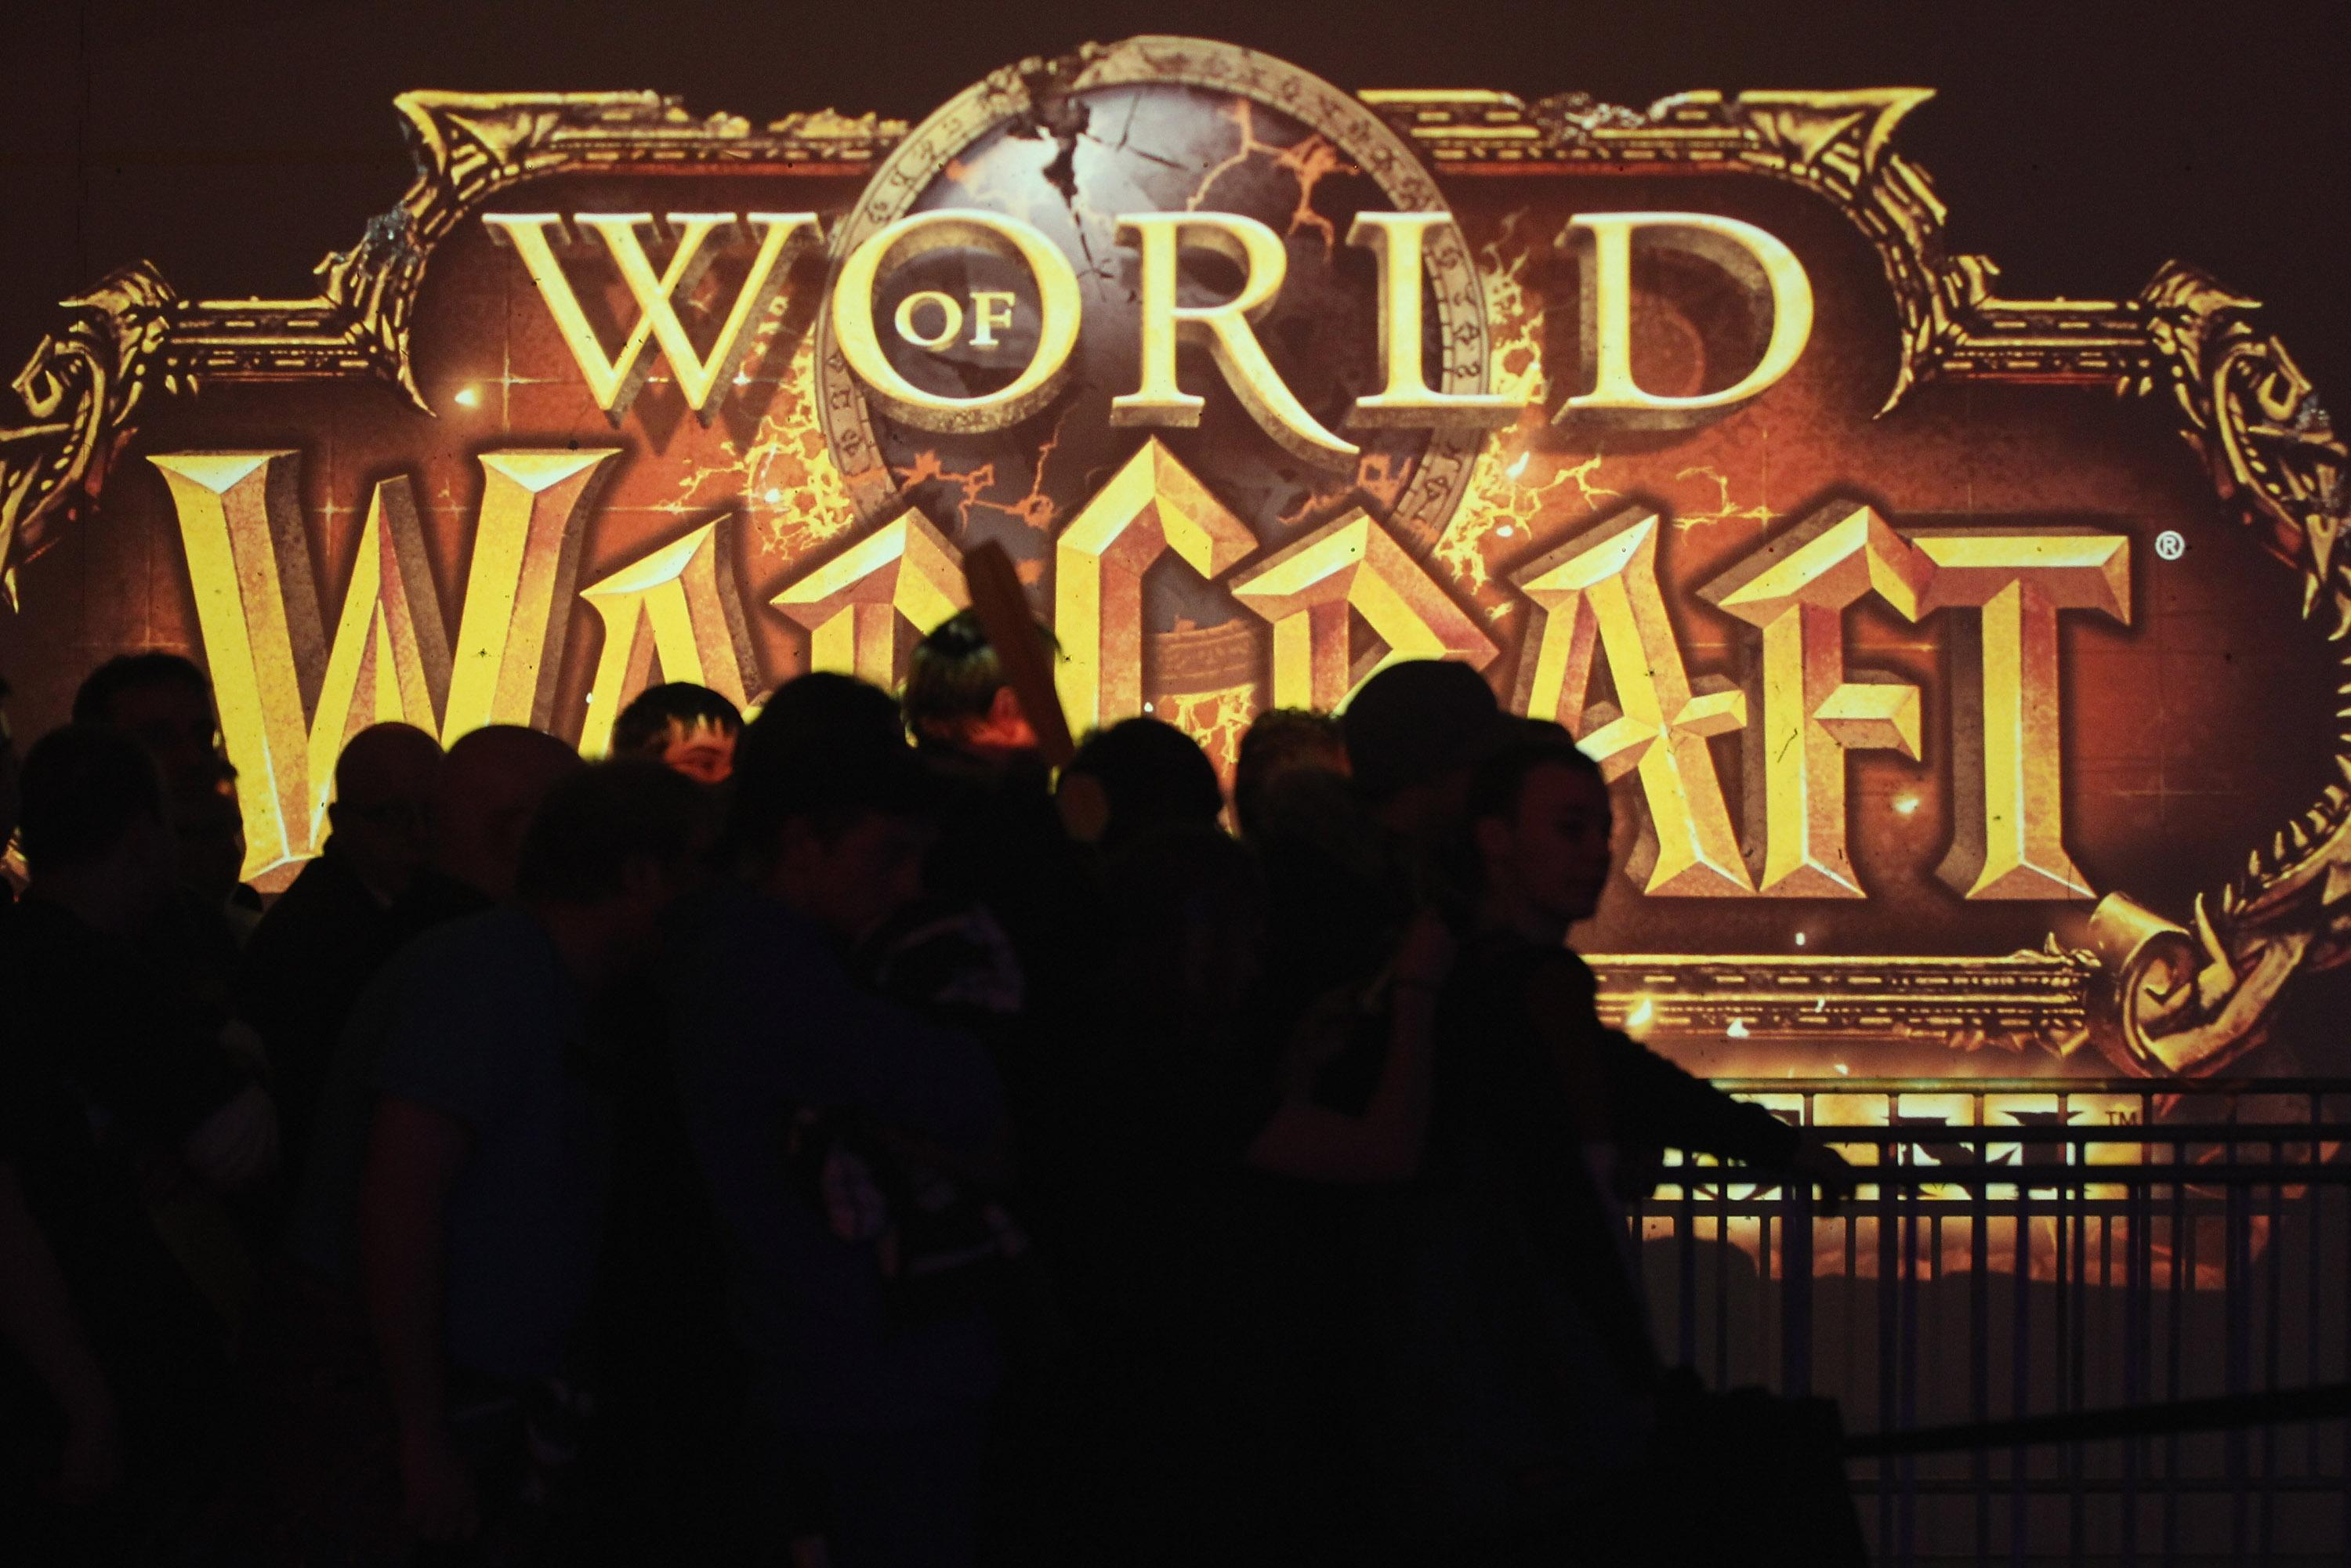 Romanian sentenced to prison in U.S. for attacks on World of Warcraft